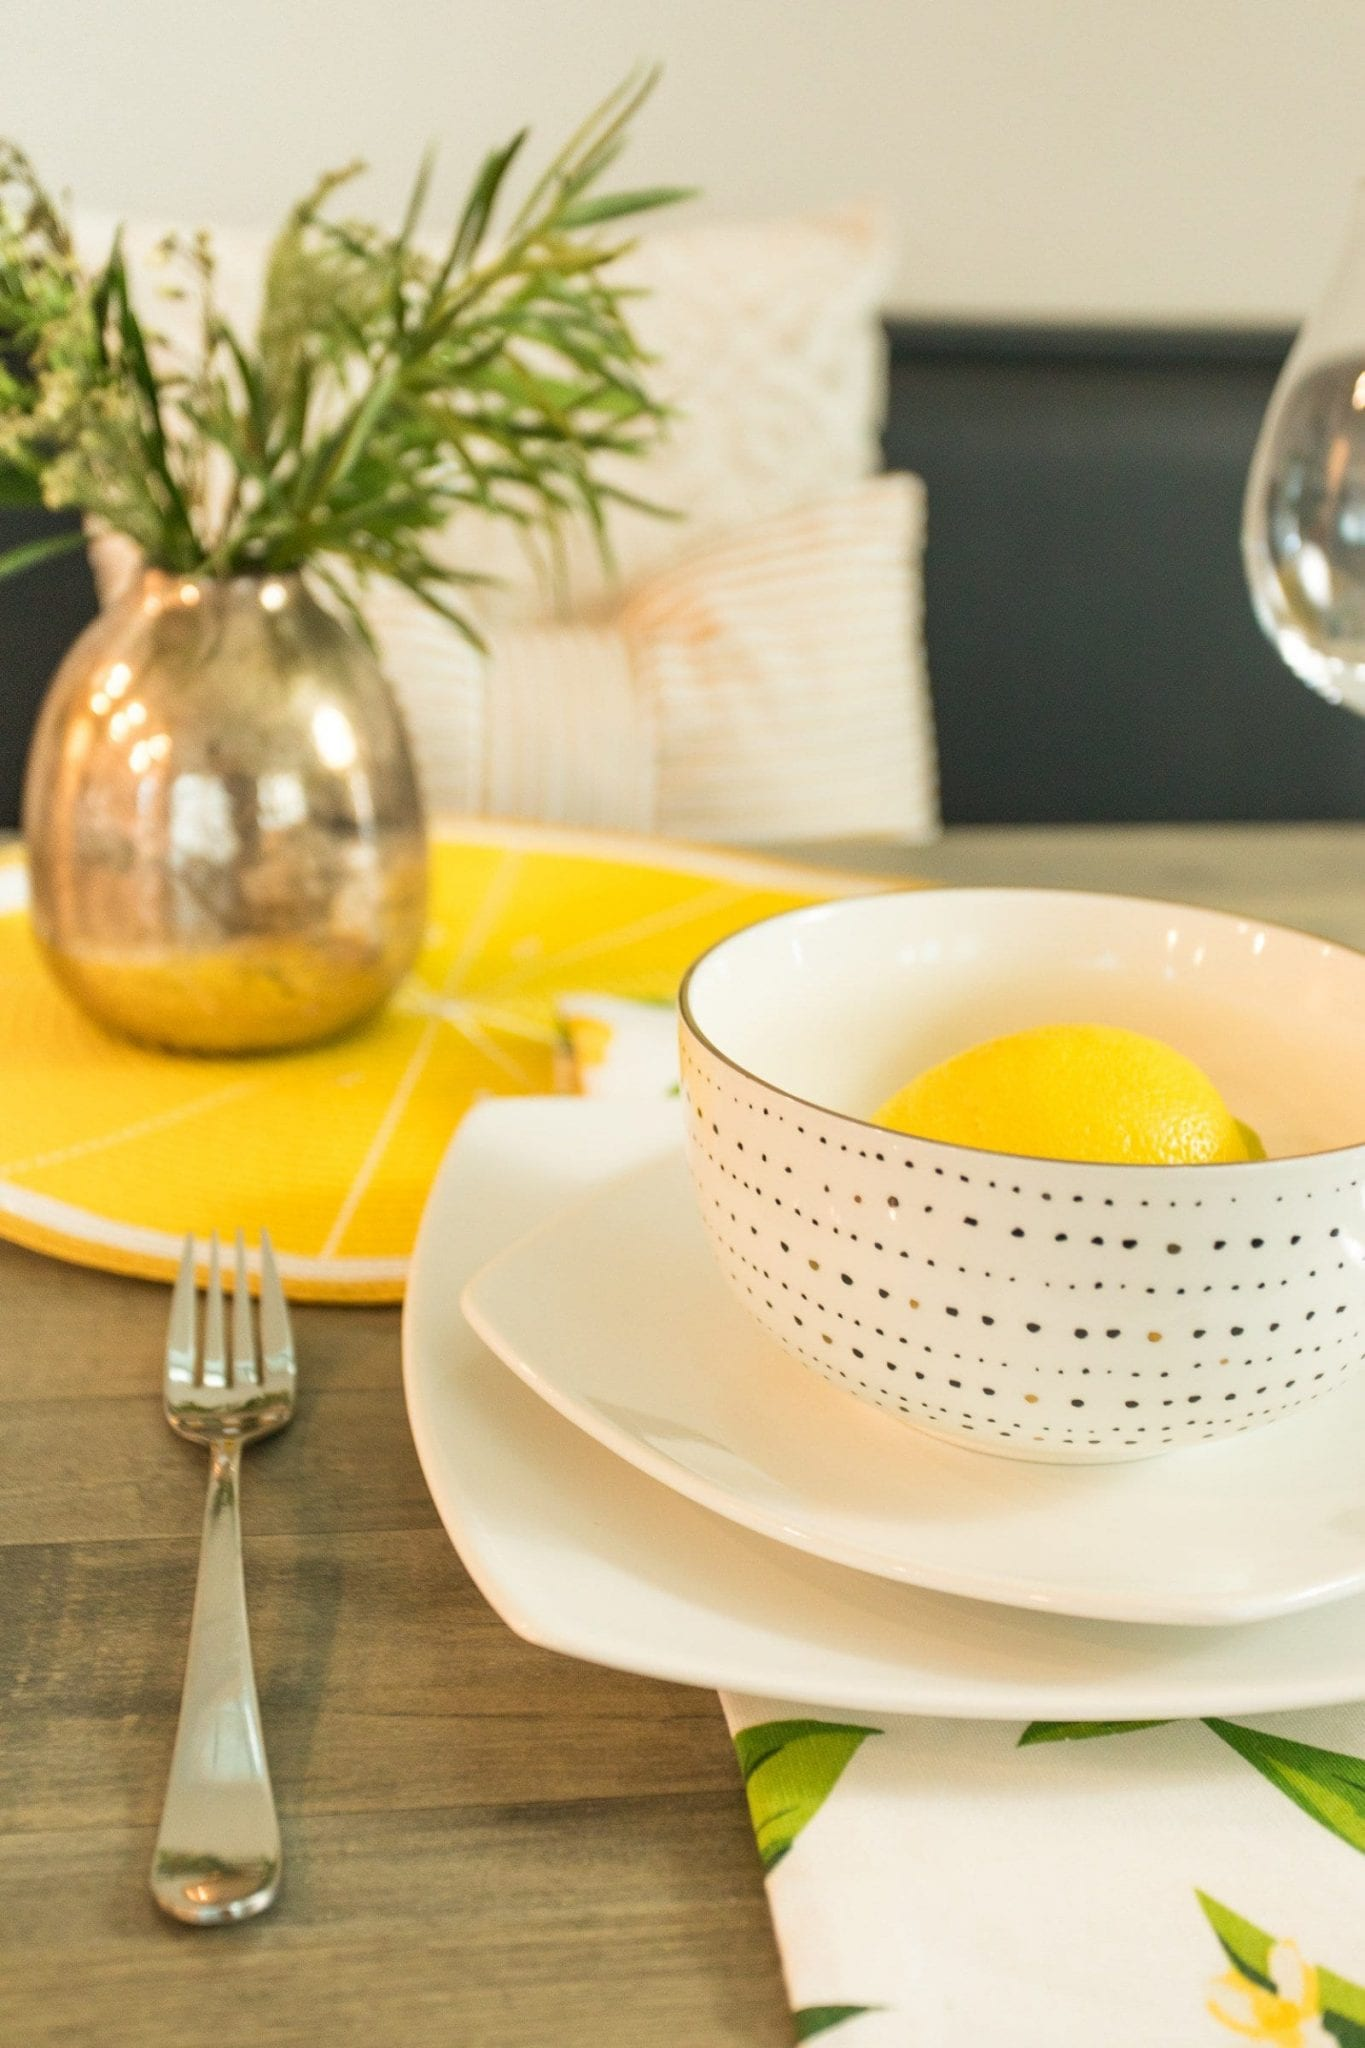 This tablescape checklist will give you tablescapes ideas for how to create dinner party table settings   neverskipbrunch.com #neverskipbrunch #decor